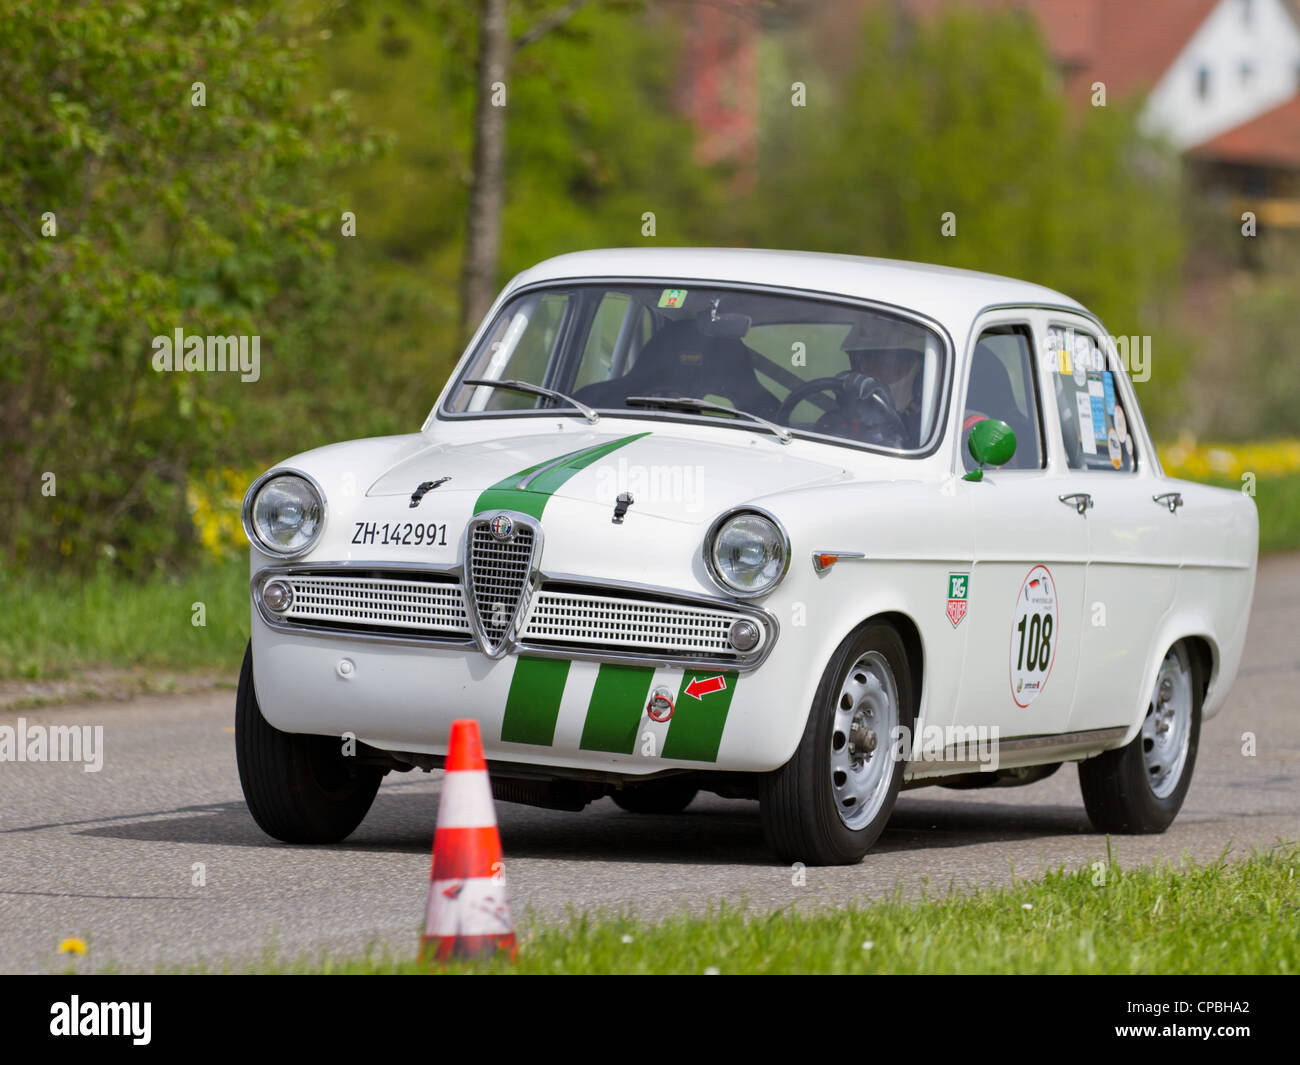 Vintage race touring car Alfa Romeo Giulietta TI from 1961 at Grand Prix in Mutschellen, SUI on April 29, 2012. - Stock Image